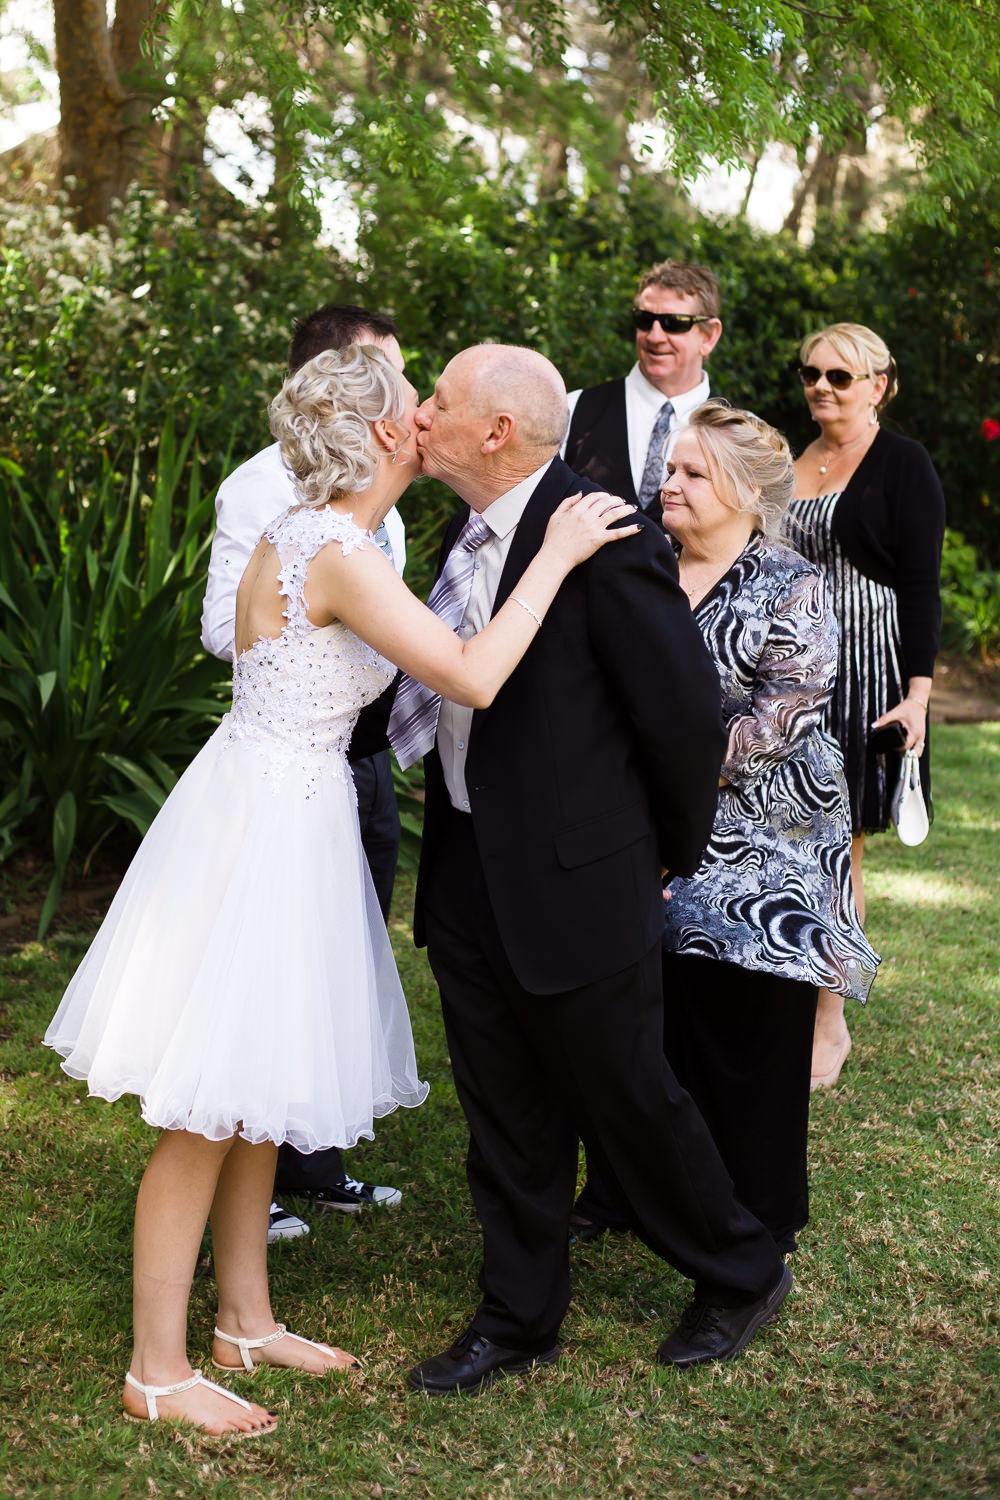 relaxed-wedding-non-traditional-wedding-gemma-clarke-phtography-australian-wedding-39